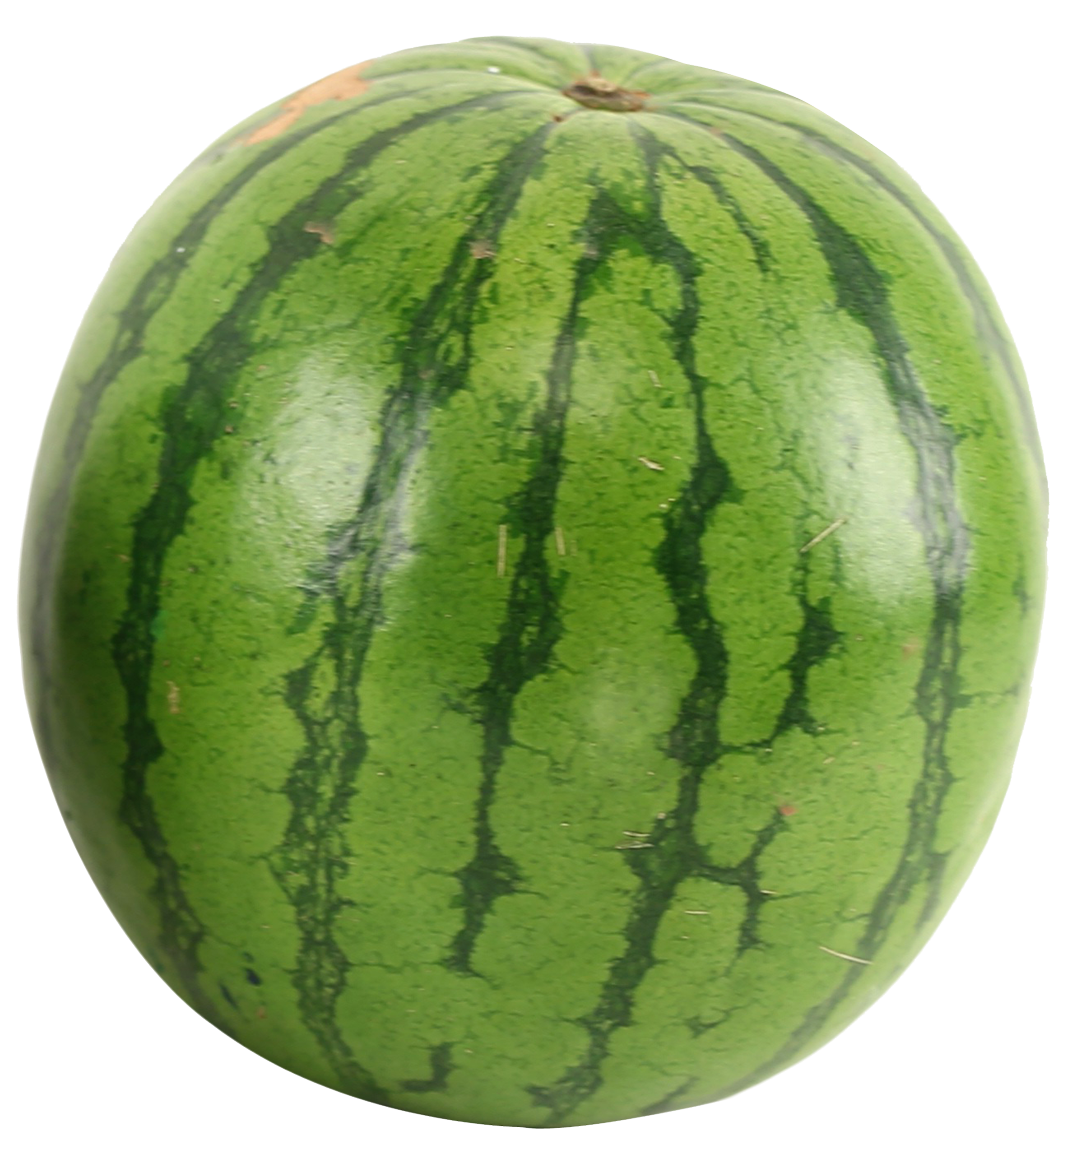 Watermelon clipart sweet fruit. Png transparent free images